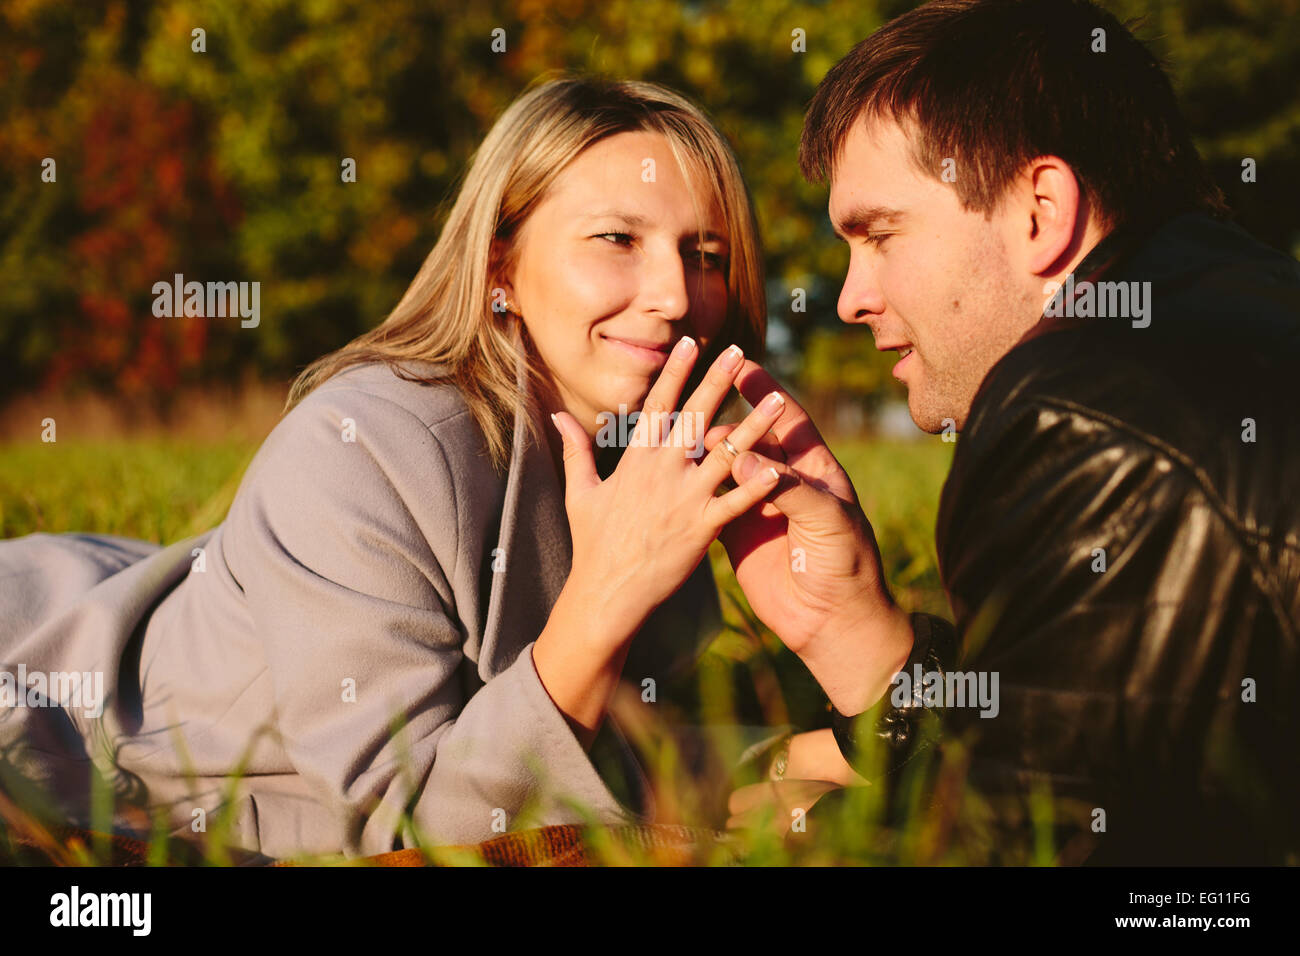 Jeune beau couple Photo Stock